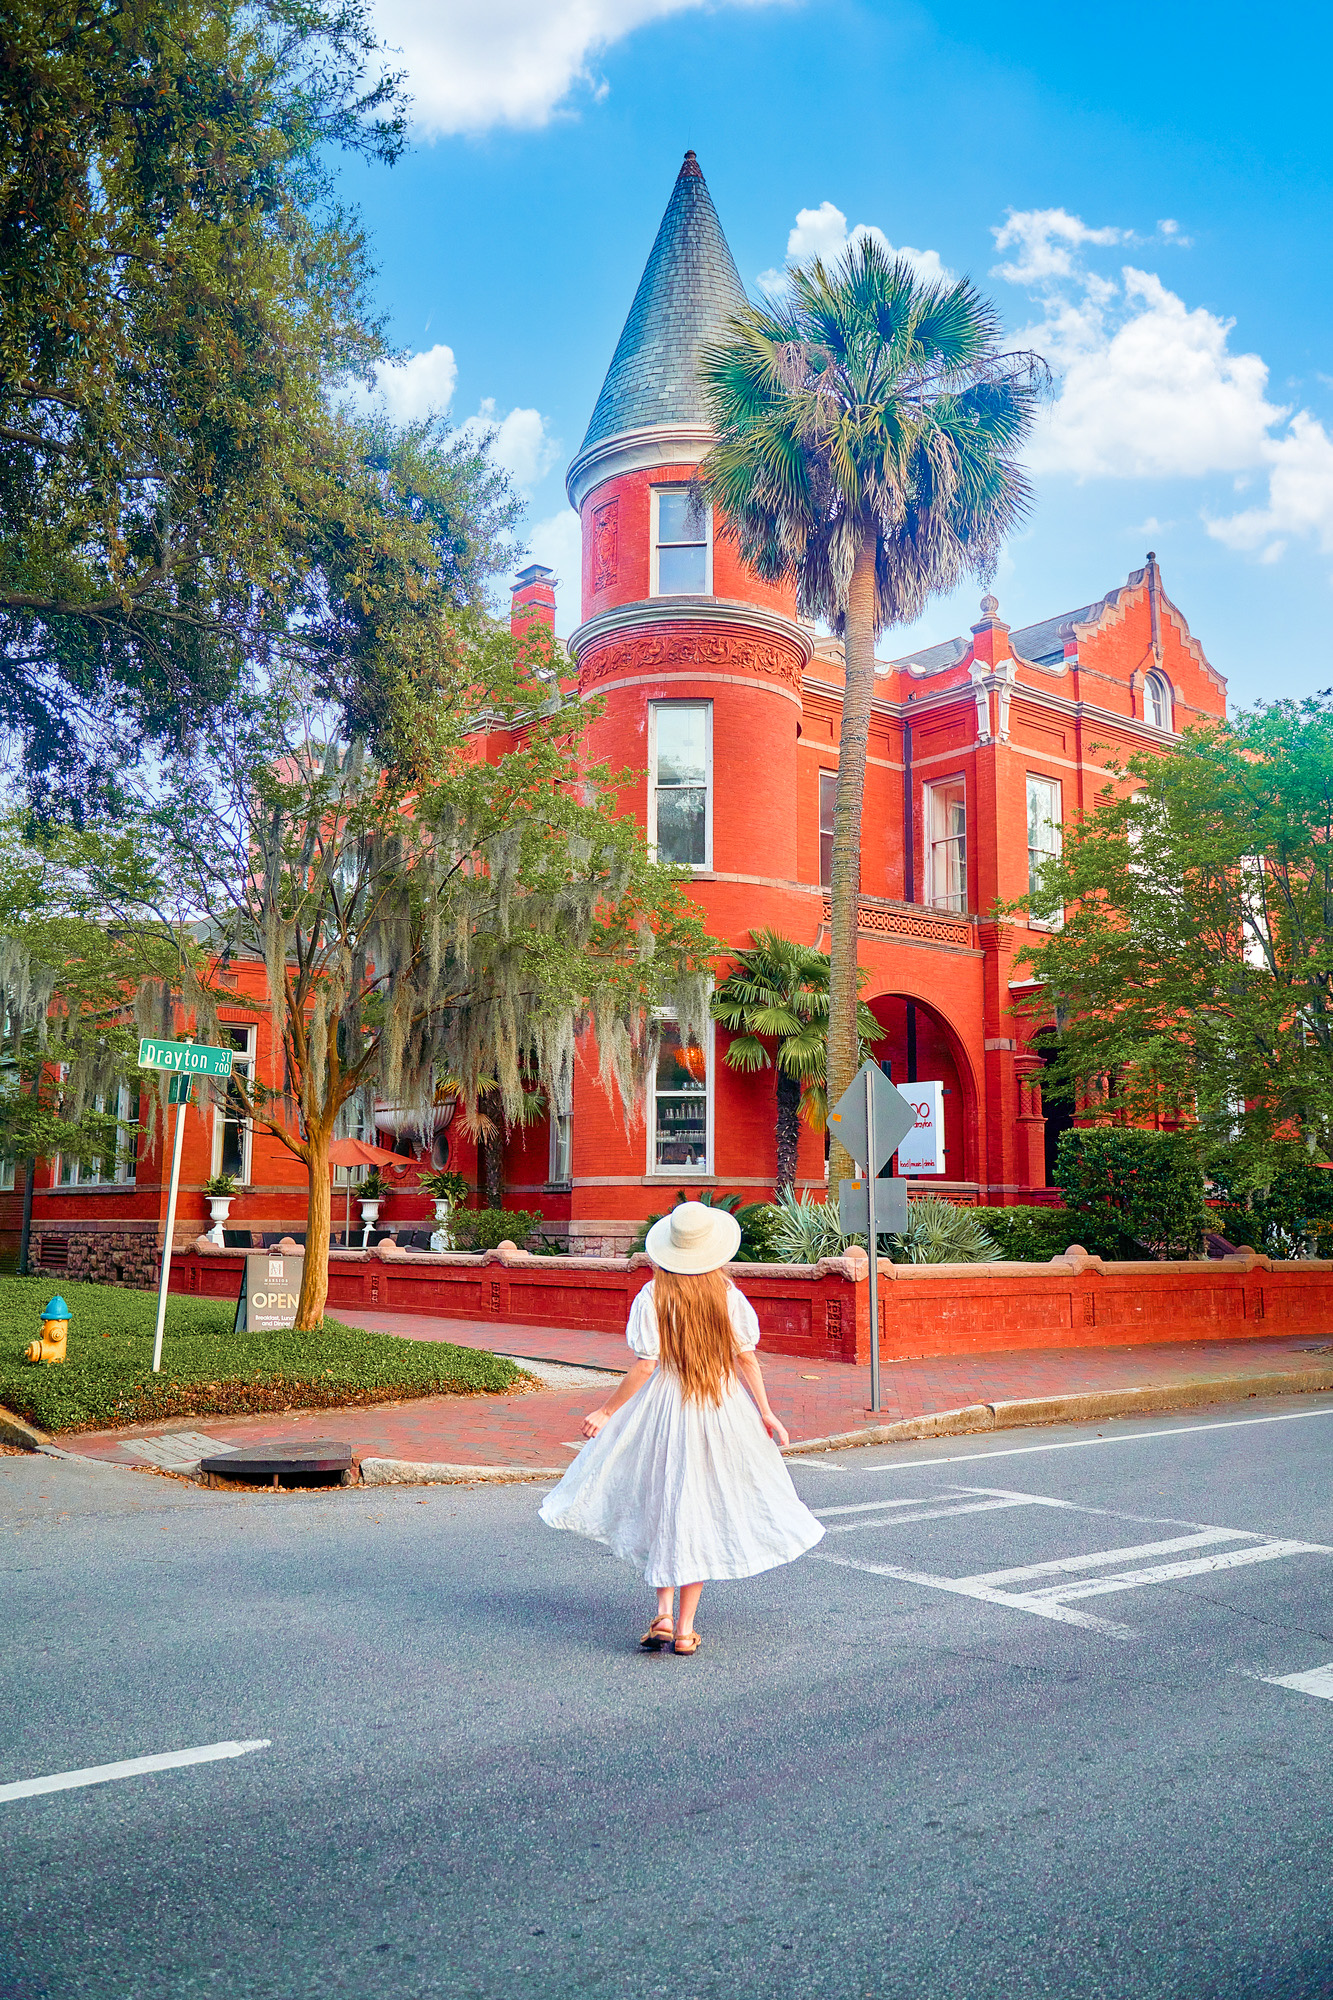 A woman with long hair wearing a white sundress and sun hat standing in the road in front of the Forsyth Mansion. Forsyth Mansion is a large brick home with turrets, lots of windows with white trim, and a courtyard. There are a lot of trees in front of it and shrubs and it is on the corner of the street. A great place to see during your 3 days in Savannah